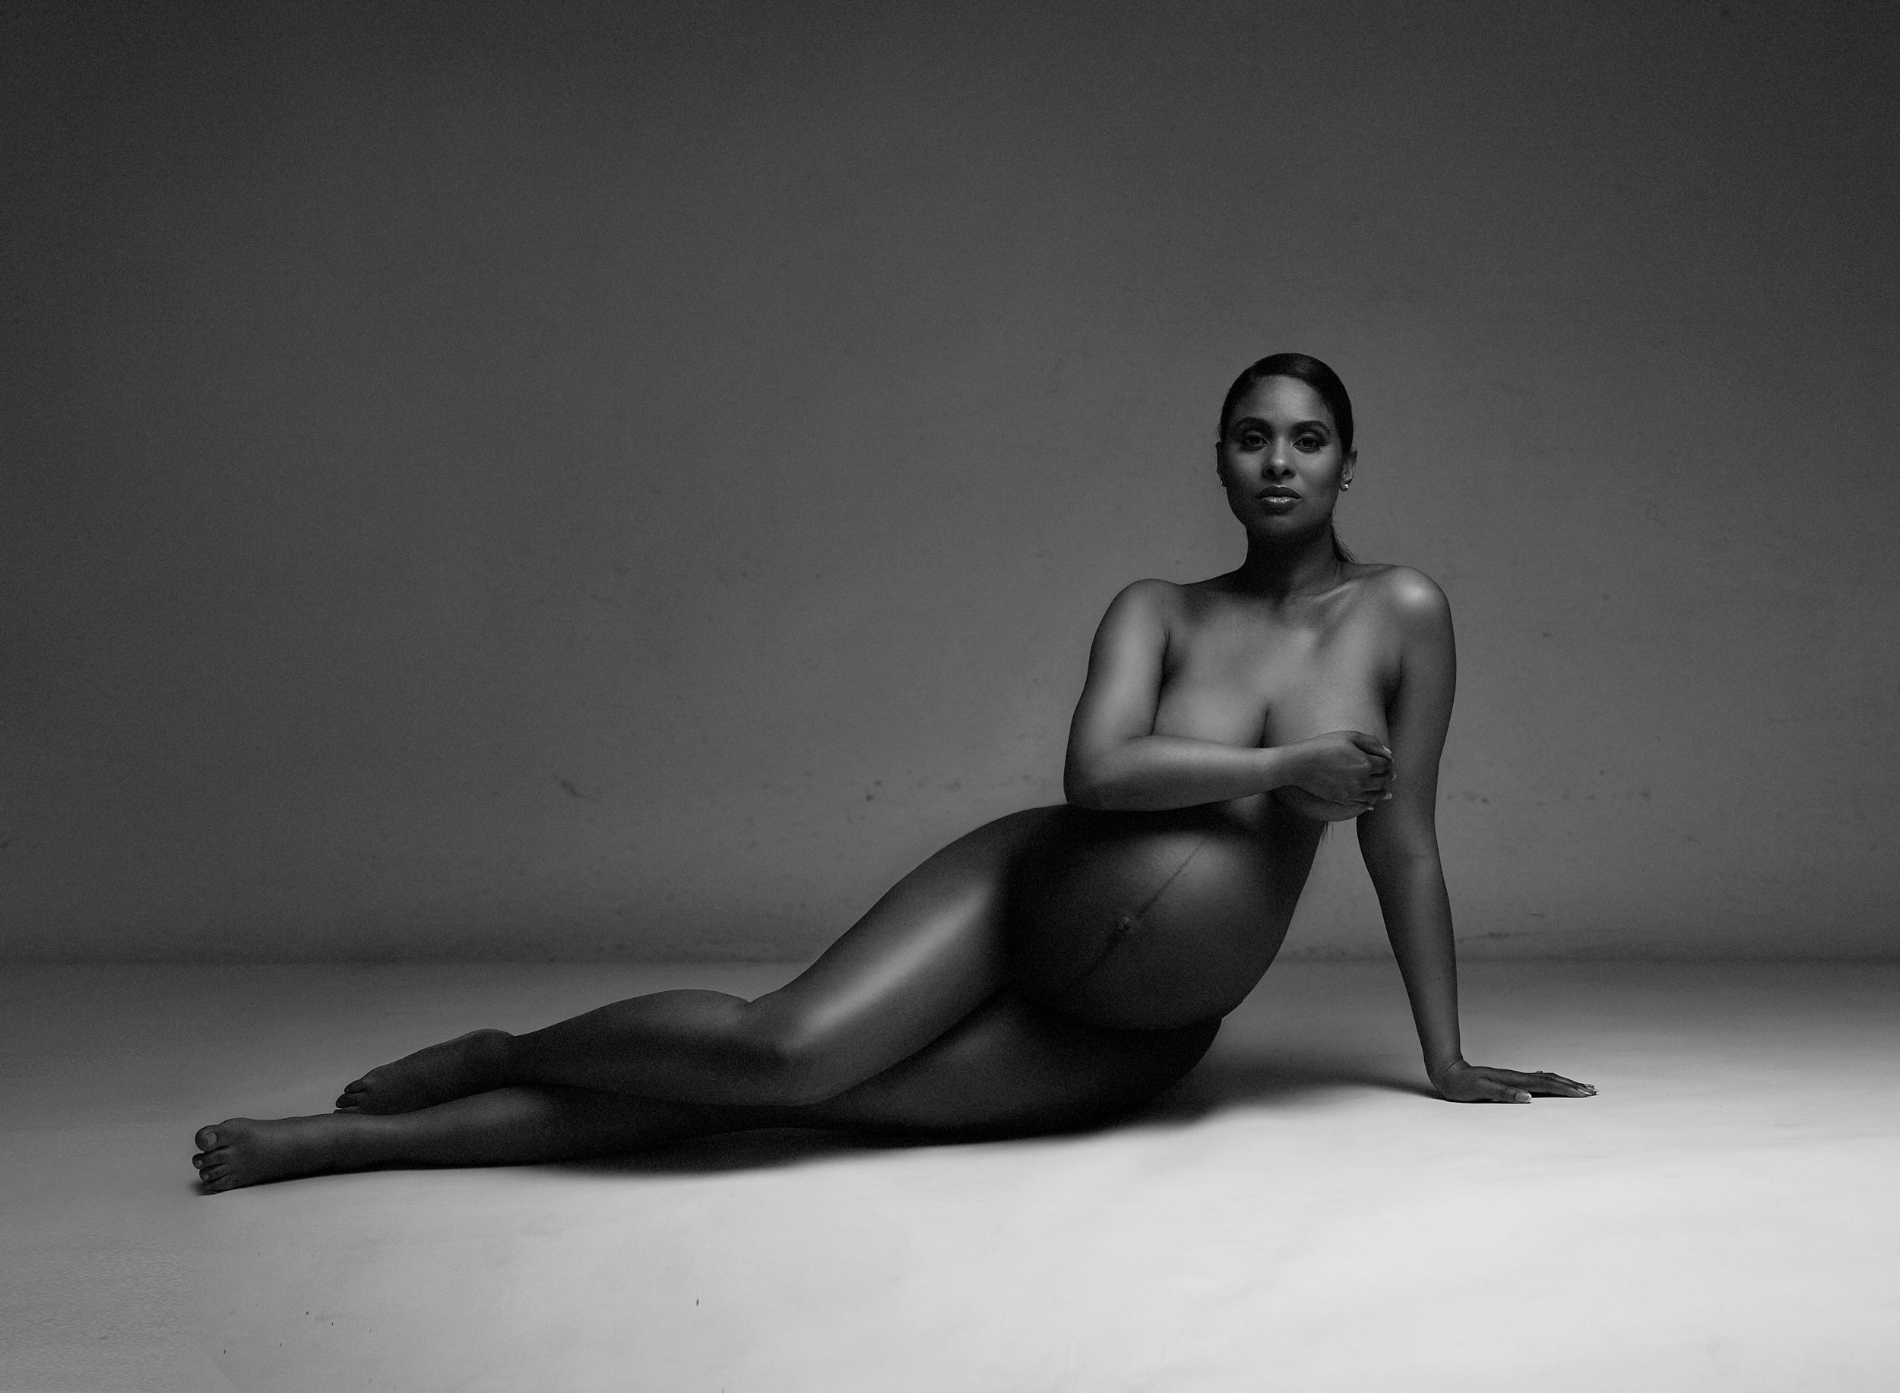 nude pregnancy photography